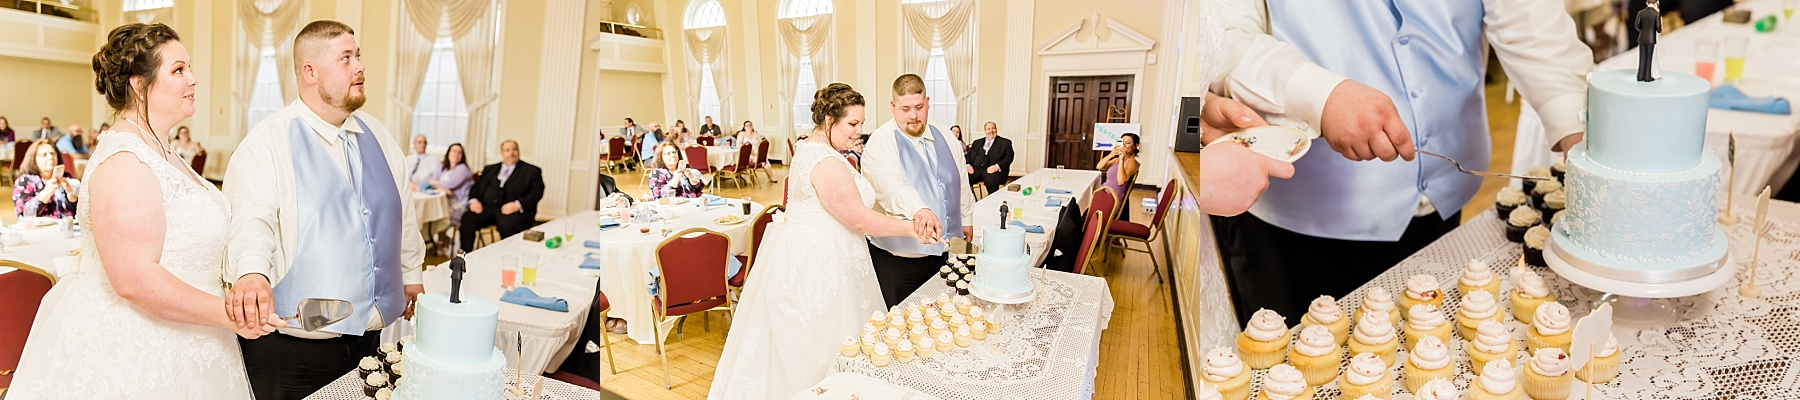 lafayette indiana wedding photographer photography thomas duncan hall_0174.jpg